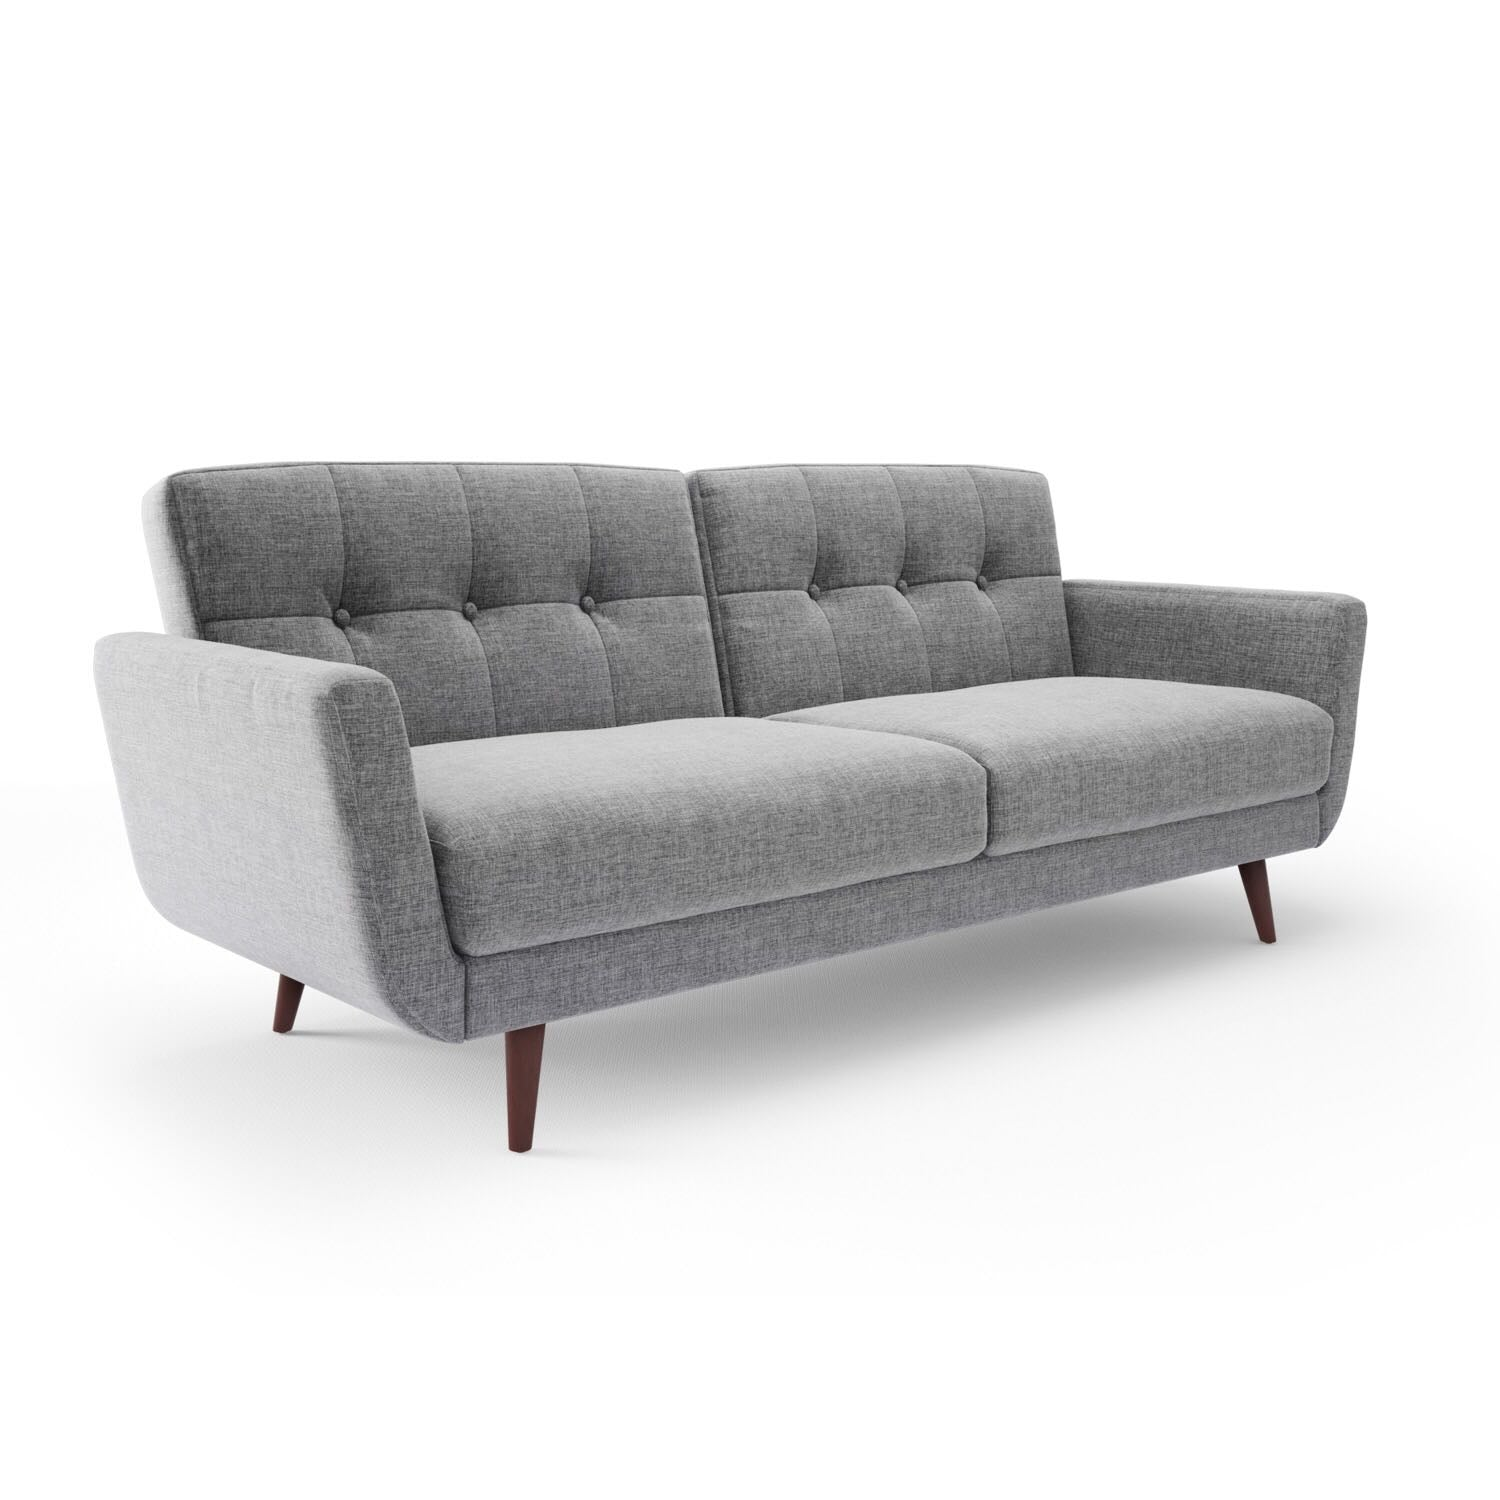 Superieur Athos Convertible Sofa Bed